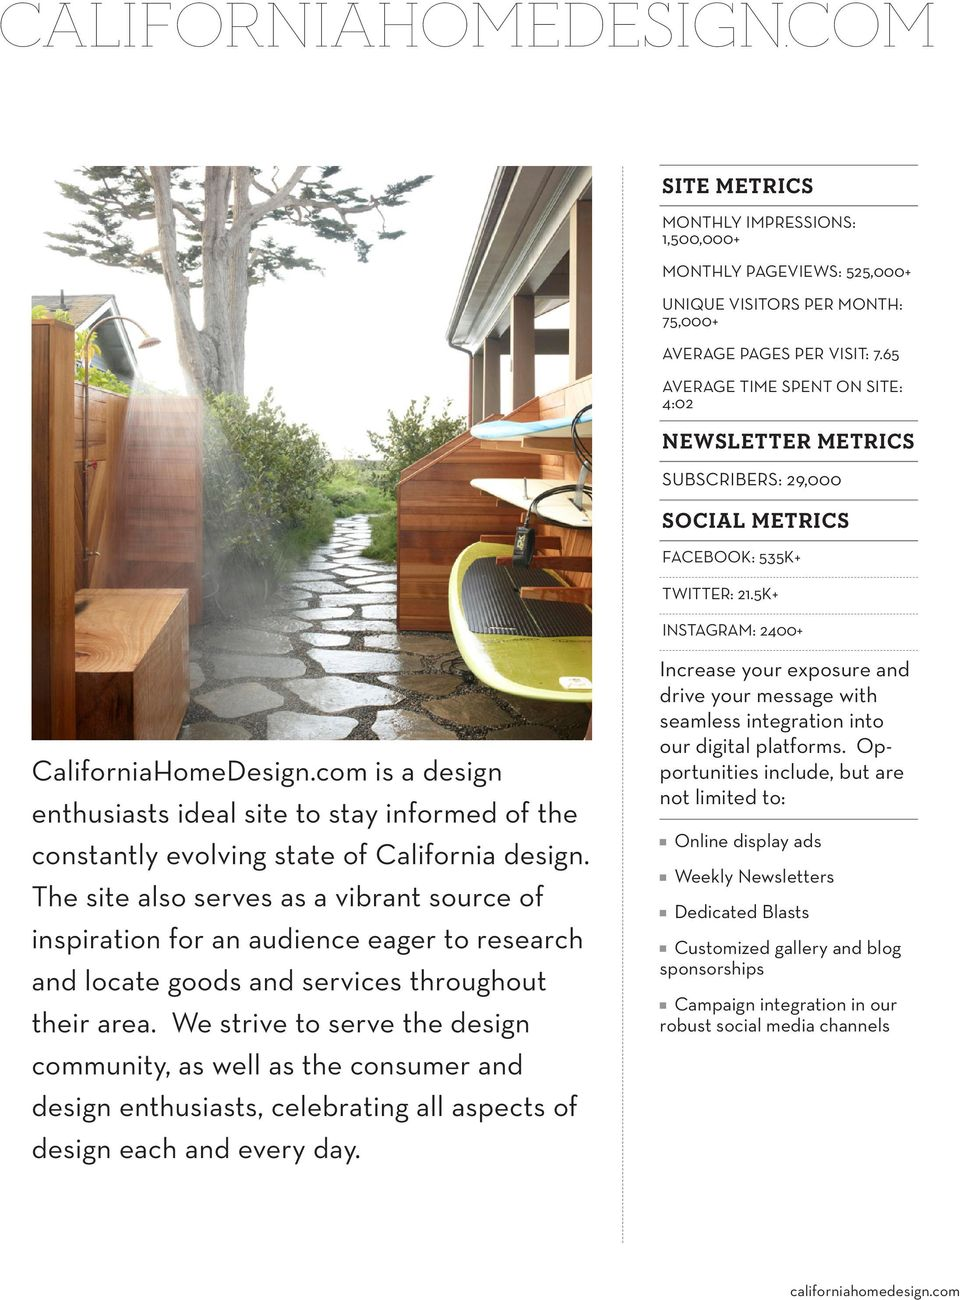 com is a design enthusiasts ideal site to stay informed of the constantly evolving state of California design.